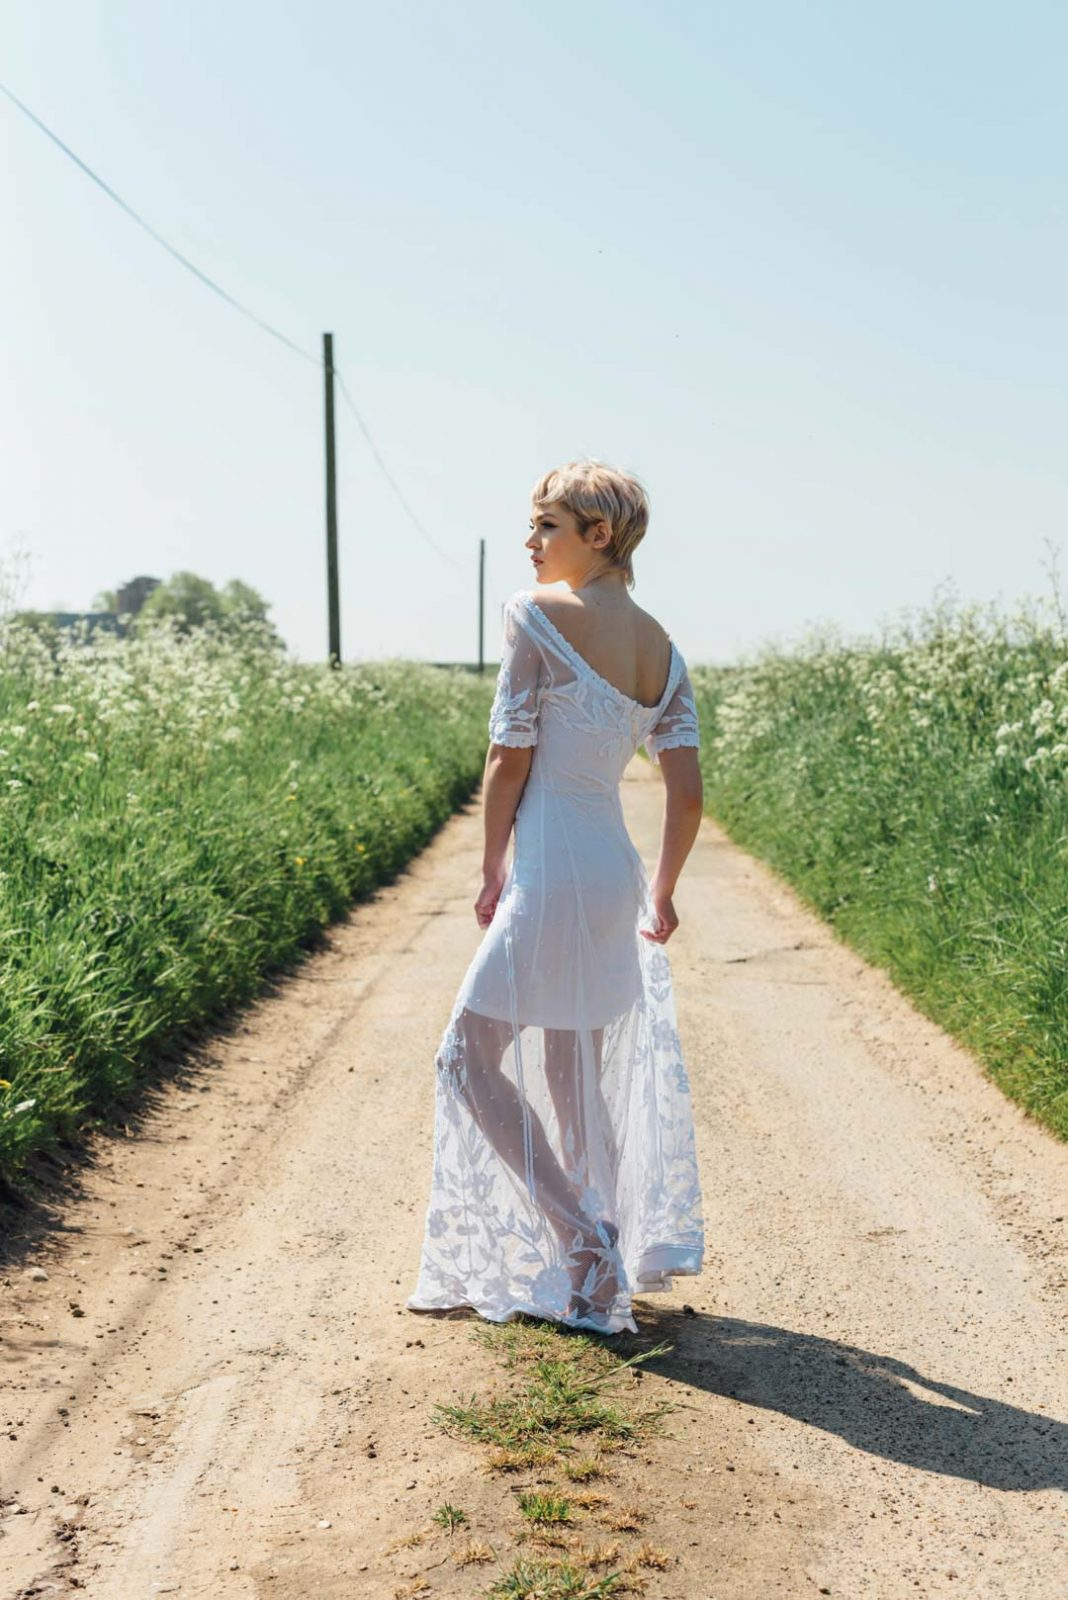 BethMoseleyPhotography_WhiteonWhite-13FINAL1080px wide-44